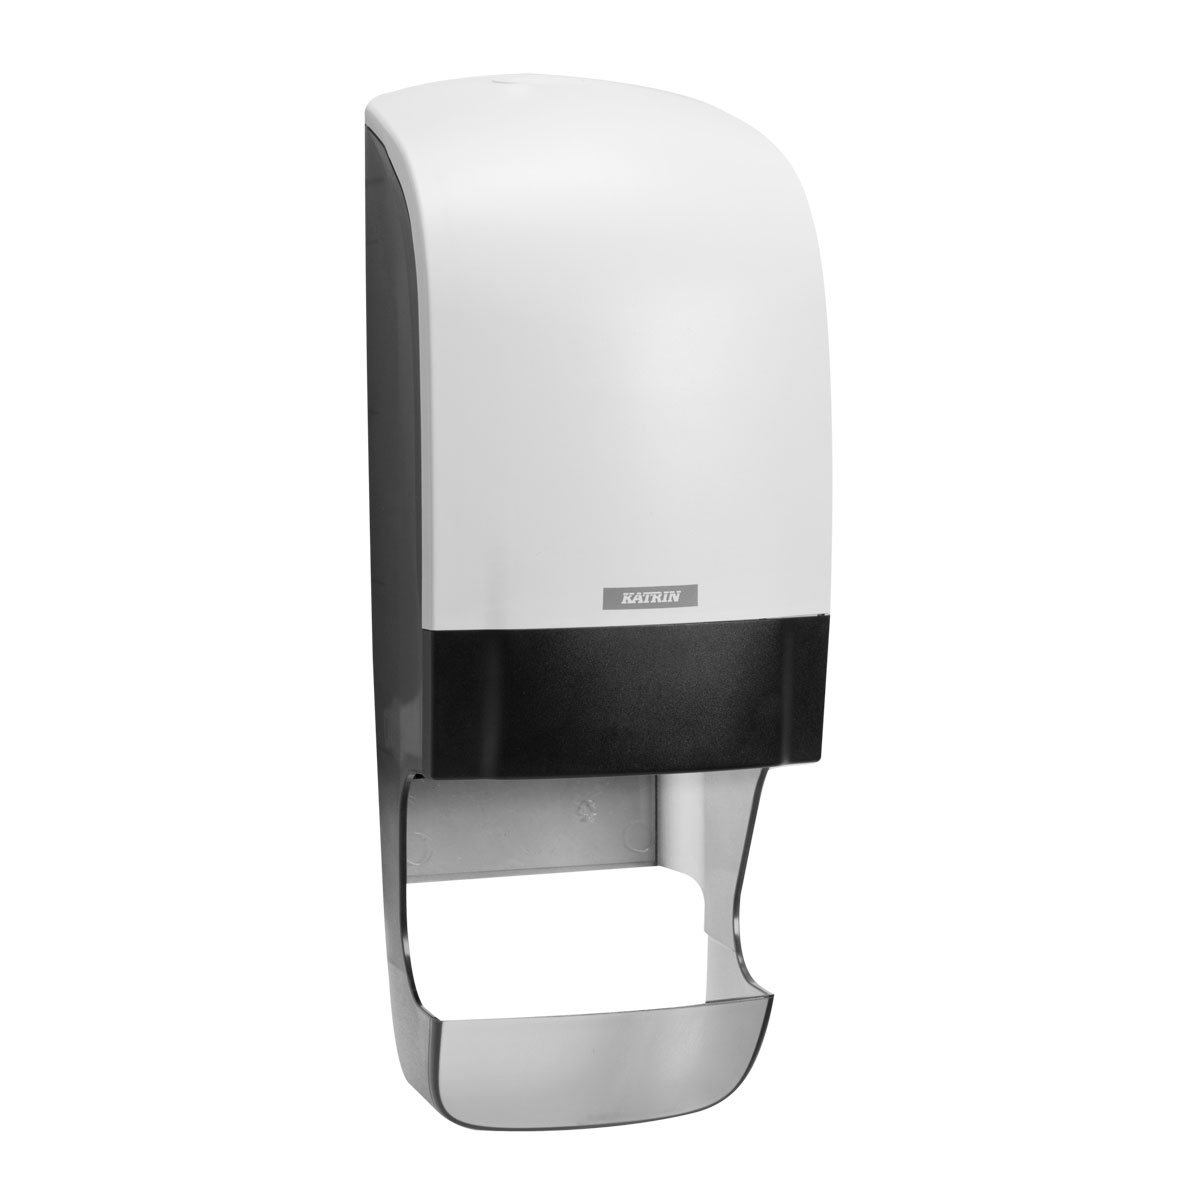 Katrin AHK345-WT Inclusive System Toilet Dispenser, White